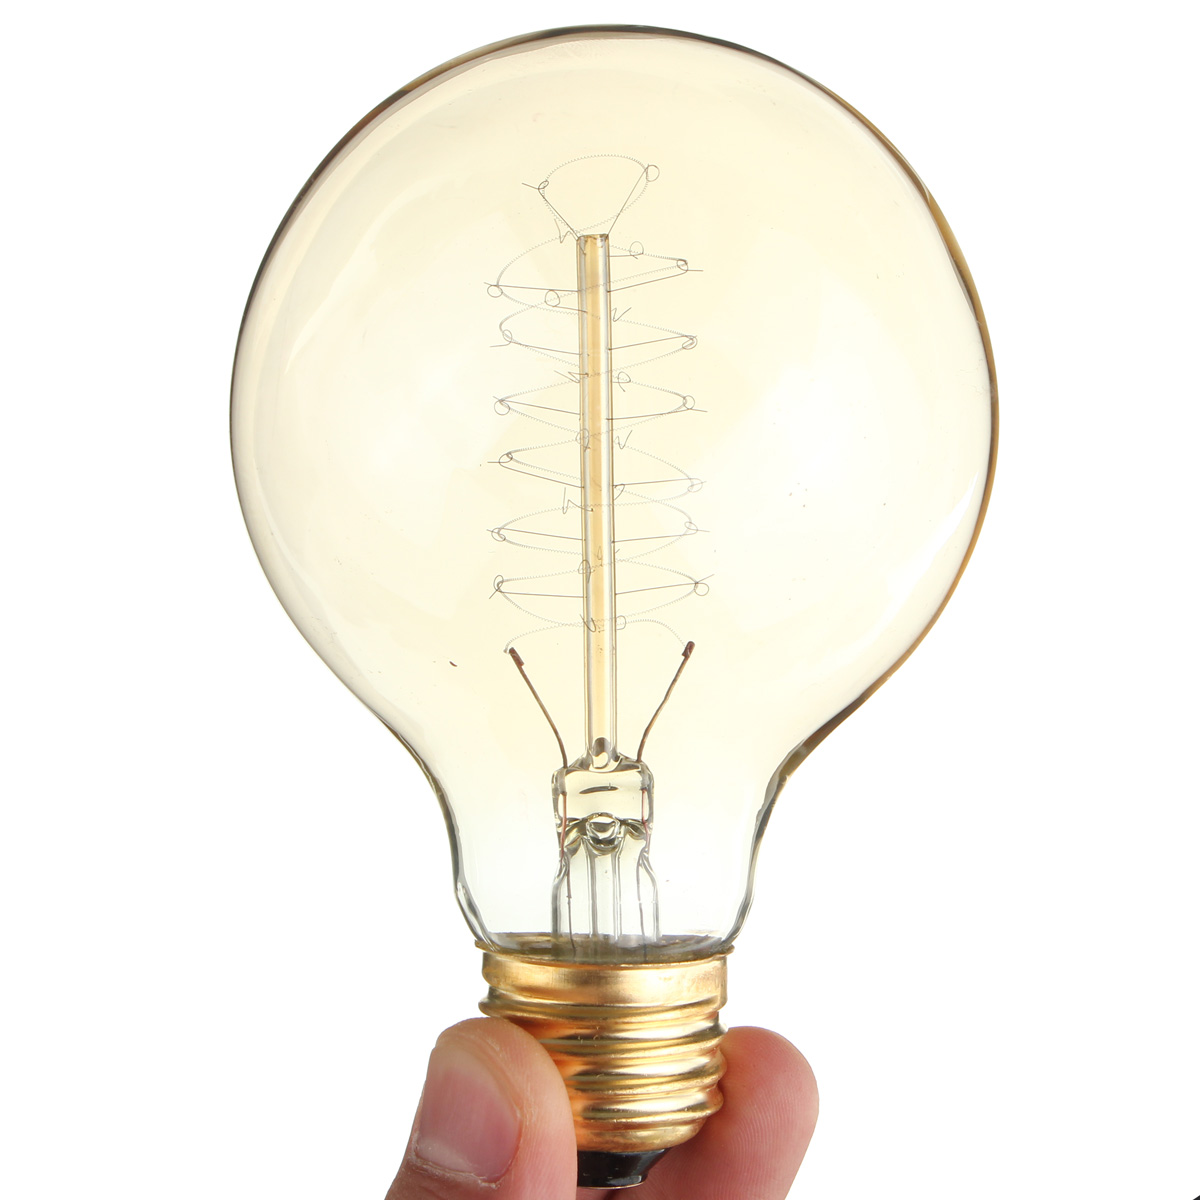 Smuxi AC110V 220V E27 Retro Edison Light Bulb 60W Incandescent Bulbs Tungsten Filament Home Decor Pendant Lighting